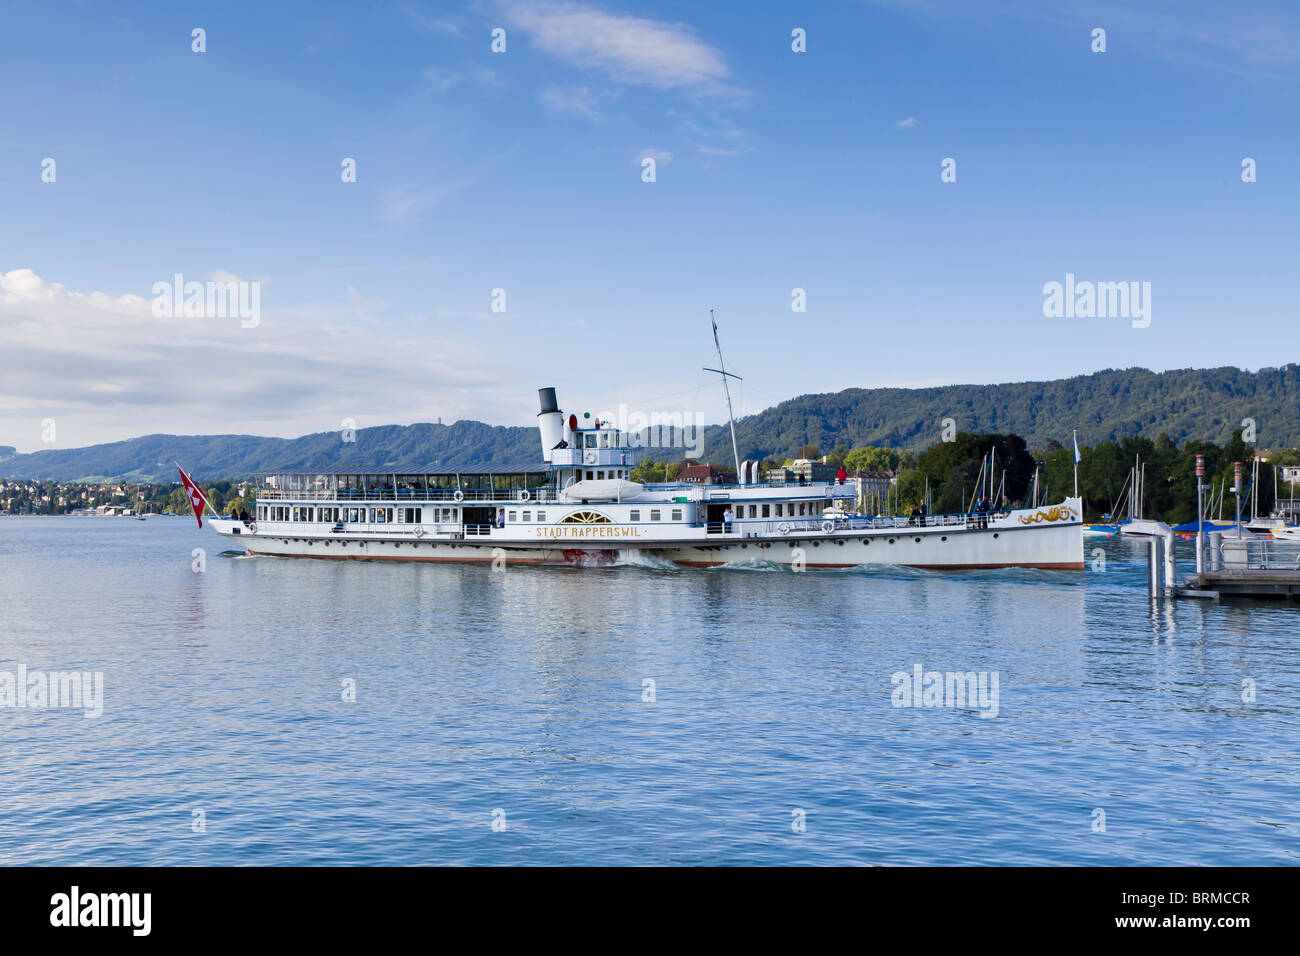 The paddle steamer,  Rapperswil,  leaving Zurich on the Zurichsee - Stock Image